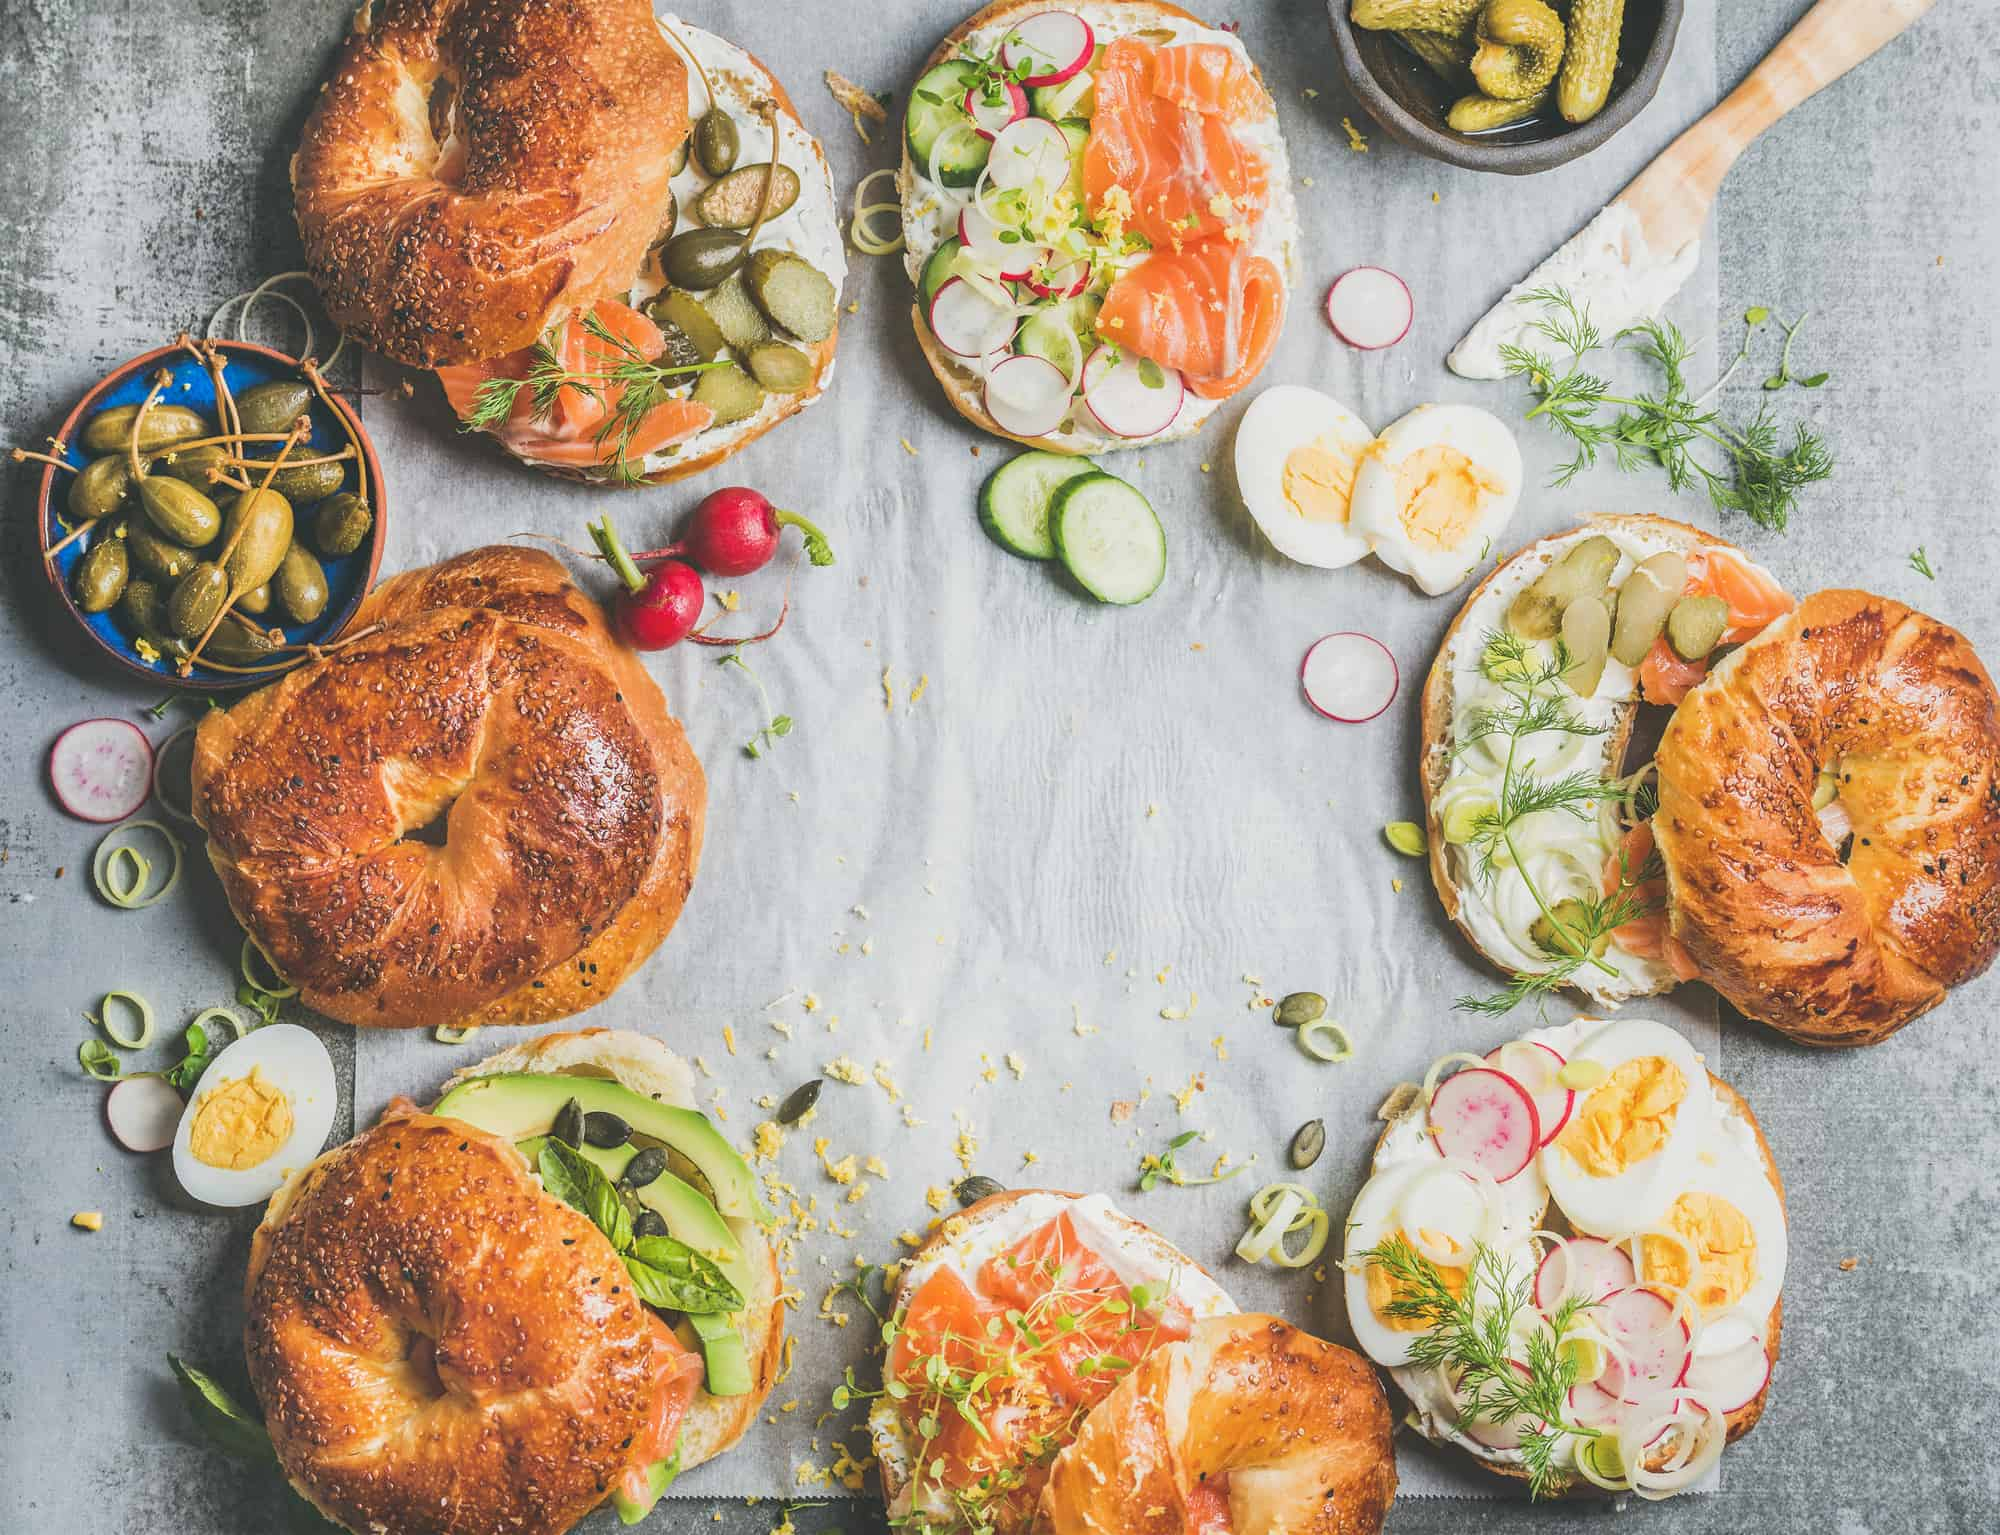 Variety of bagels with salmon, eggs, radish, avocado, cucumber, greens and cream cheese